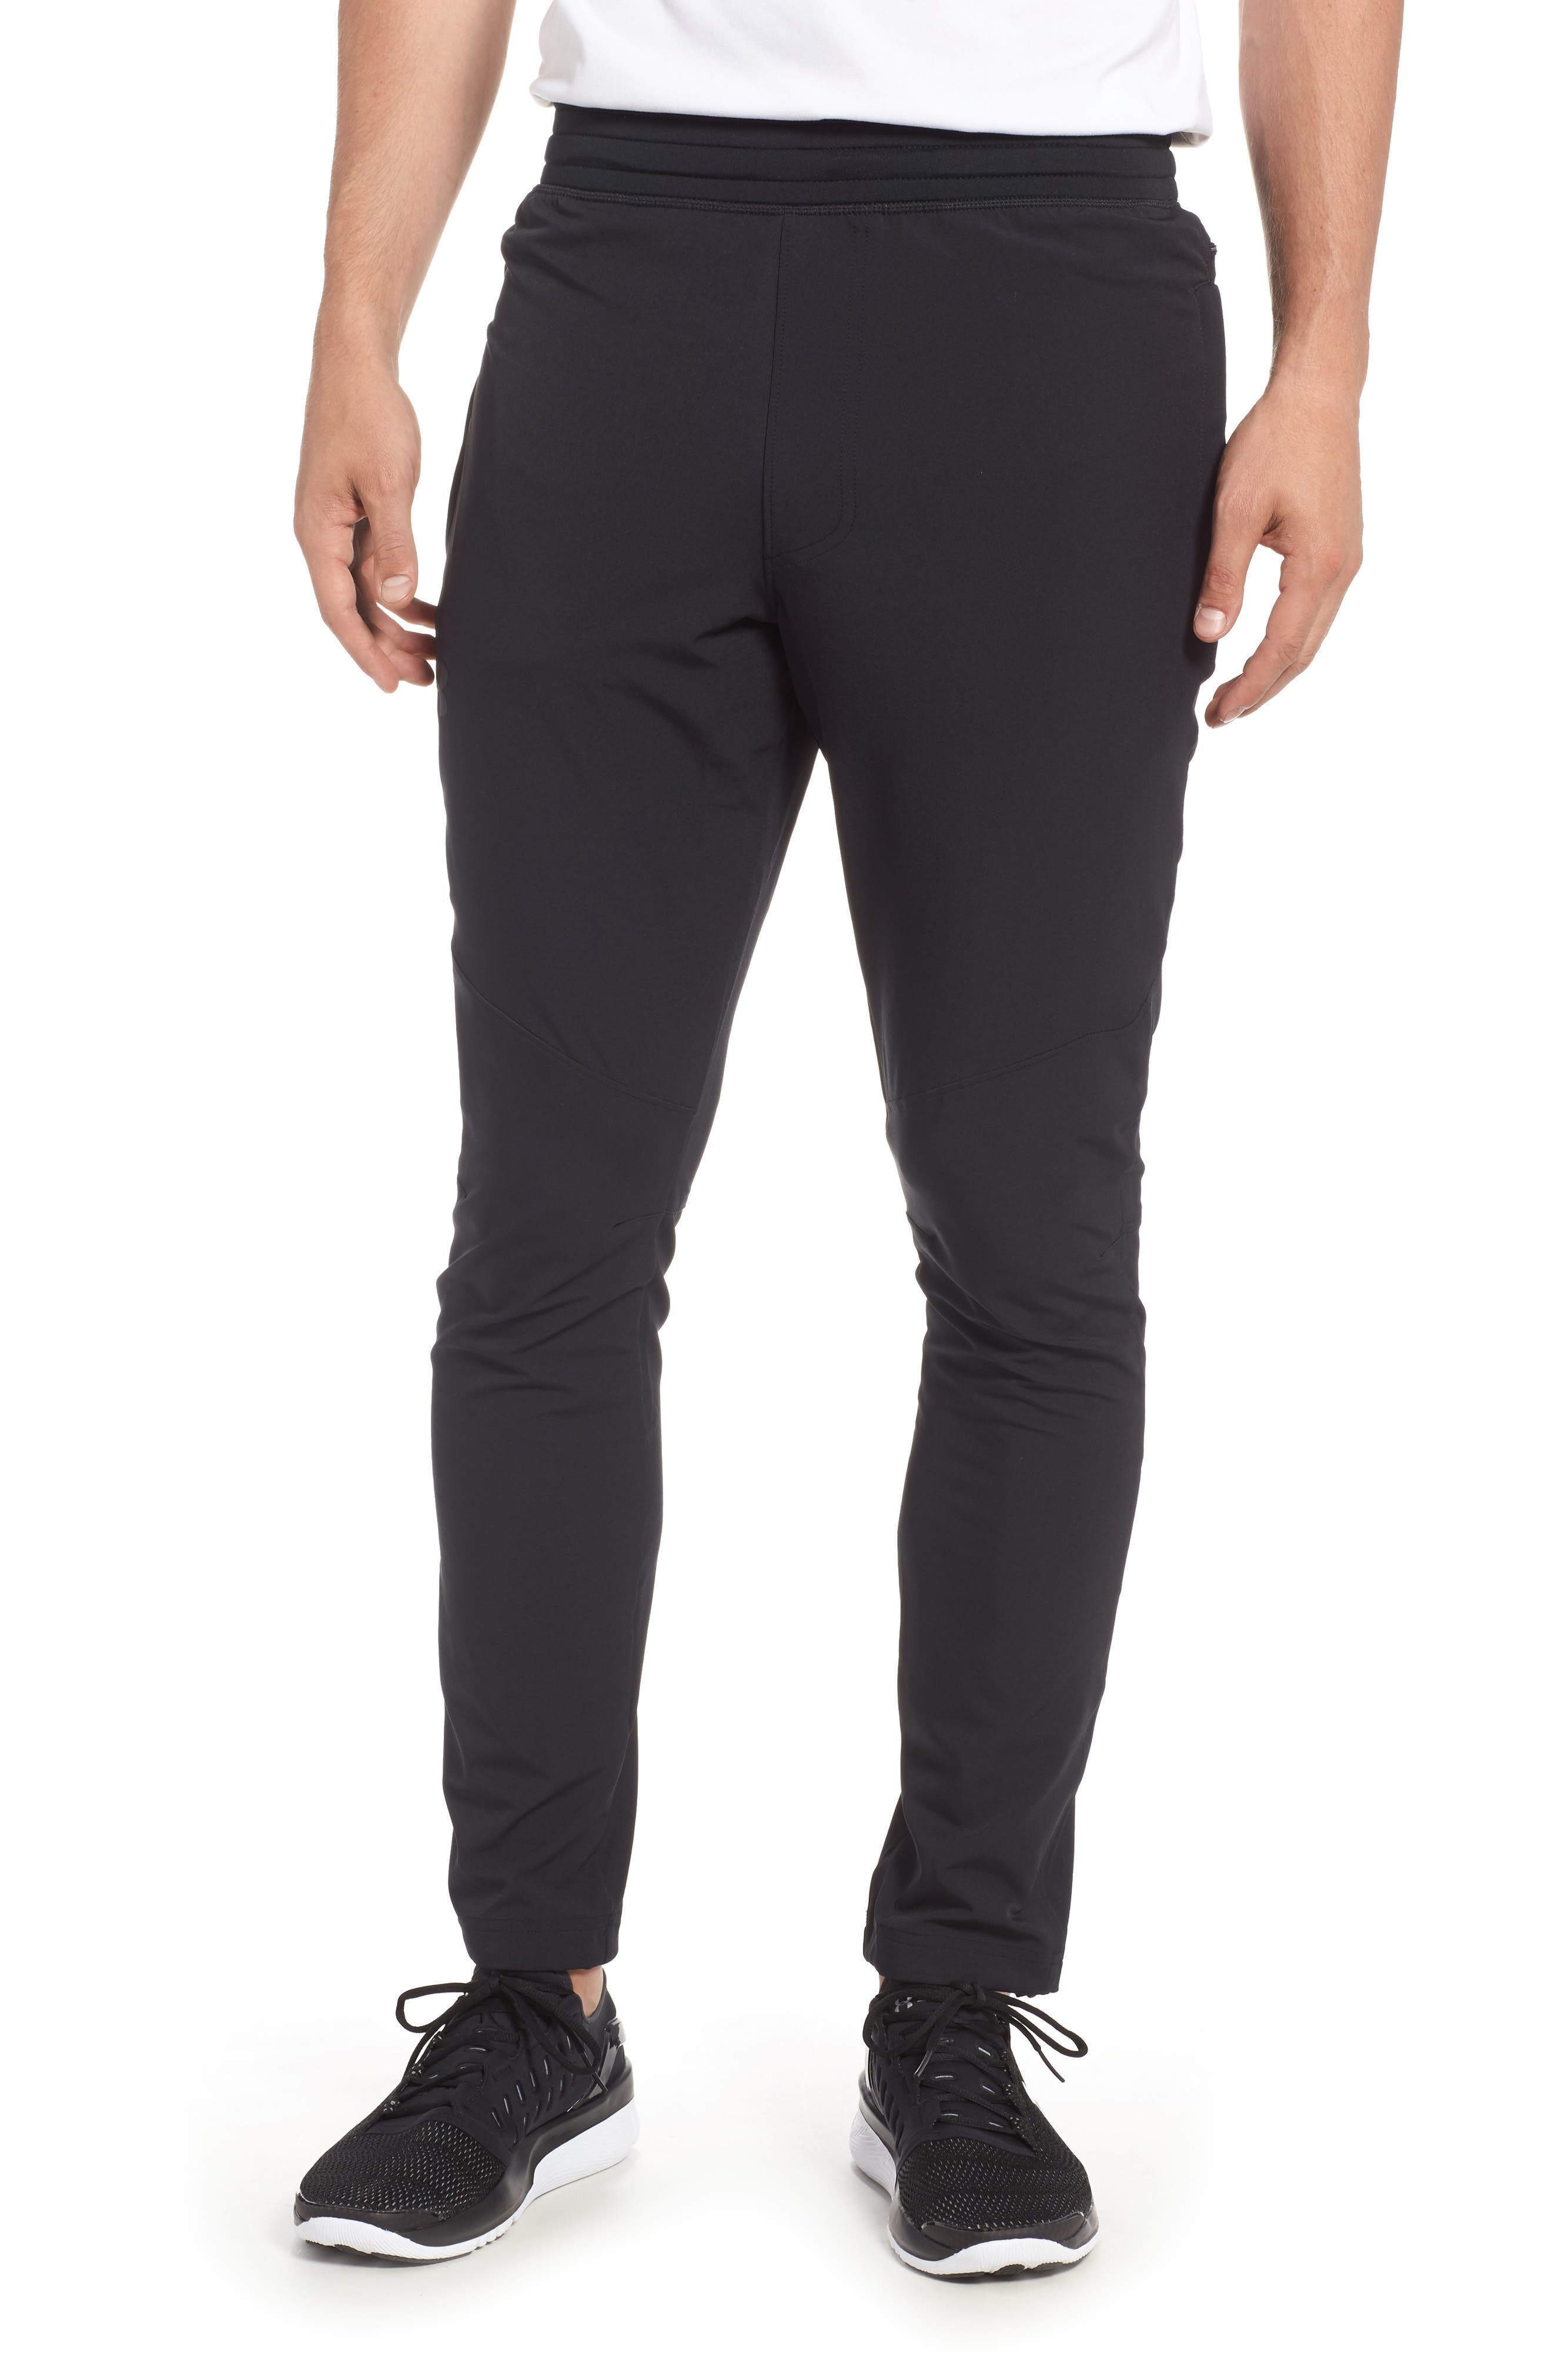 Alternate Image 1 Selected - Under Armour Fitted Woven Training Pants